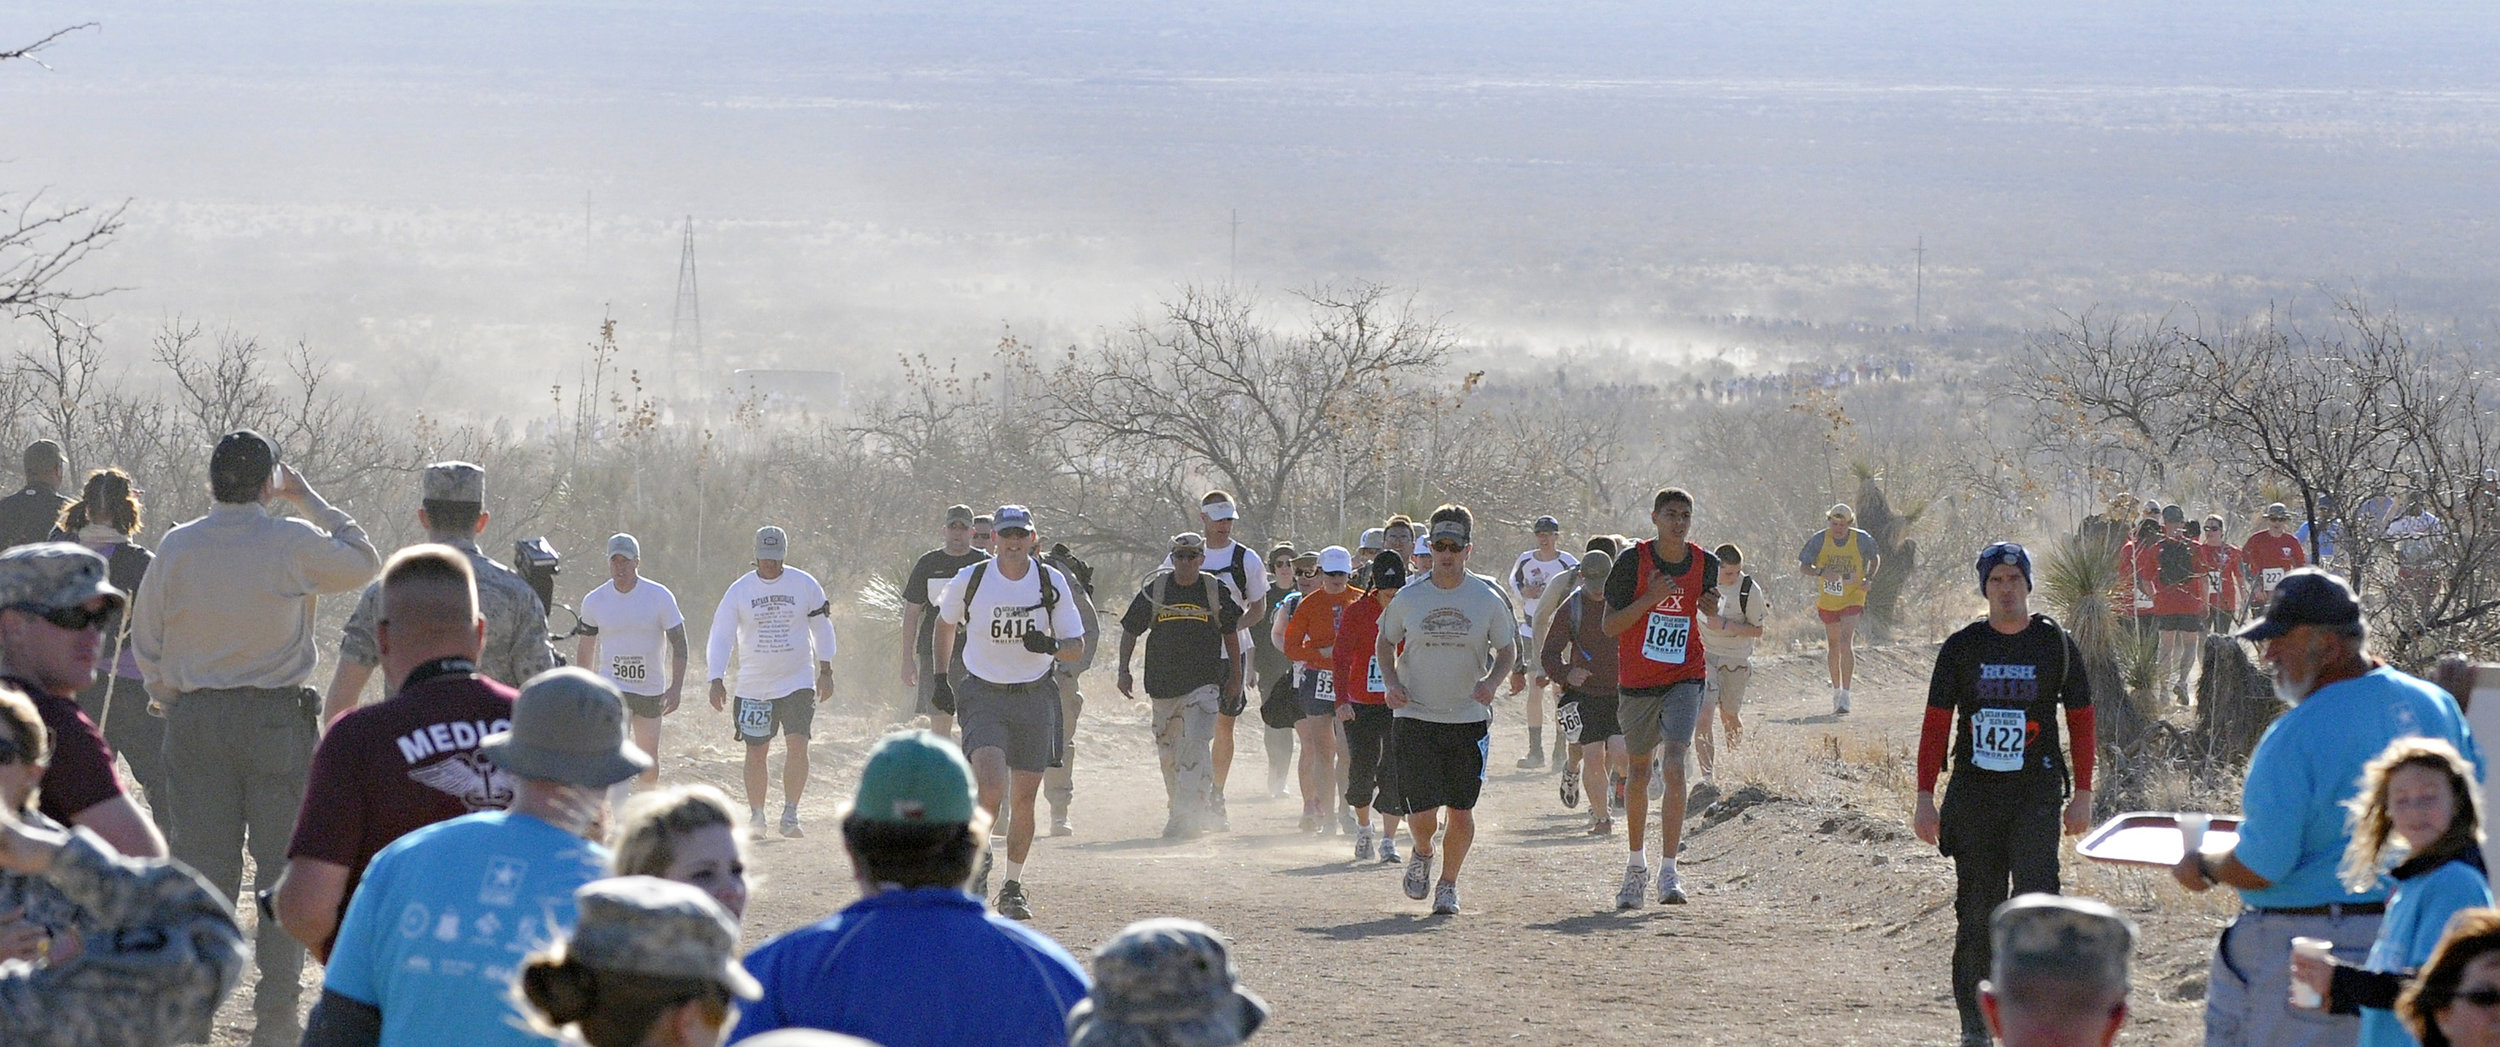 Walkers and runner emerge from the dusty desert of White Sands Missile Range during the 22nd Annual Bataan Memorial Death March, Sunday, March 27, 2011. (Morgan Petroski/Albuquerque Journal)